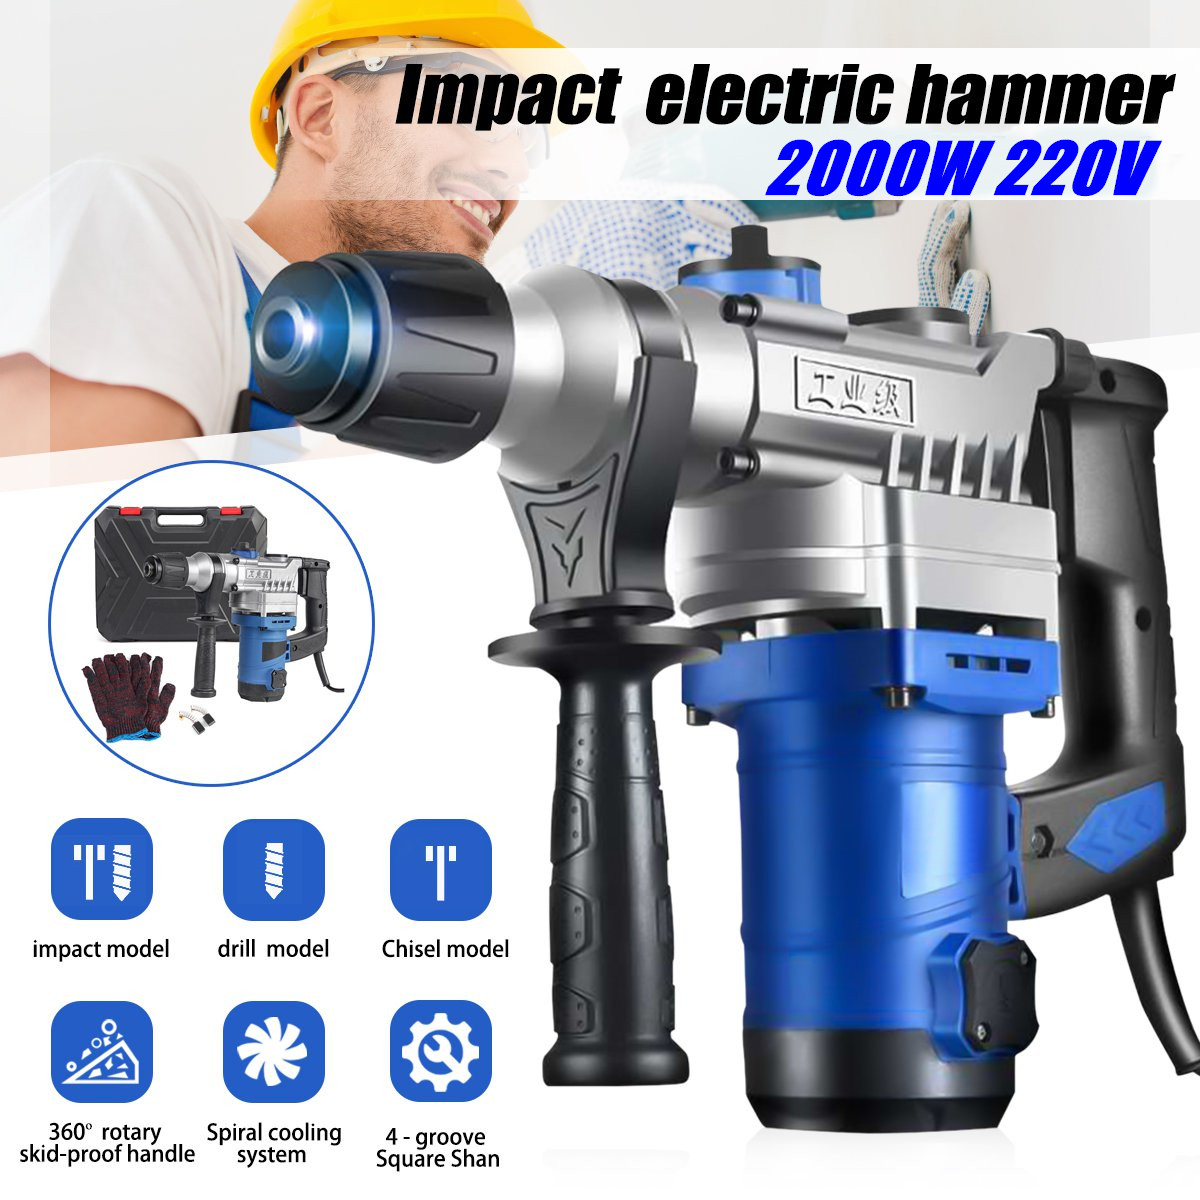 Impact Breaker Cordless Storage With 220V Drill Hammer Hammer Concrete Portable Electric Box Rotary Screwdriver Tool Heavy 2000W